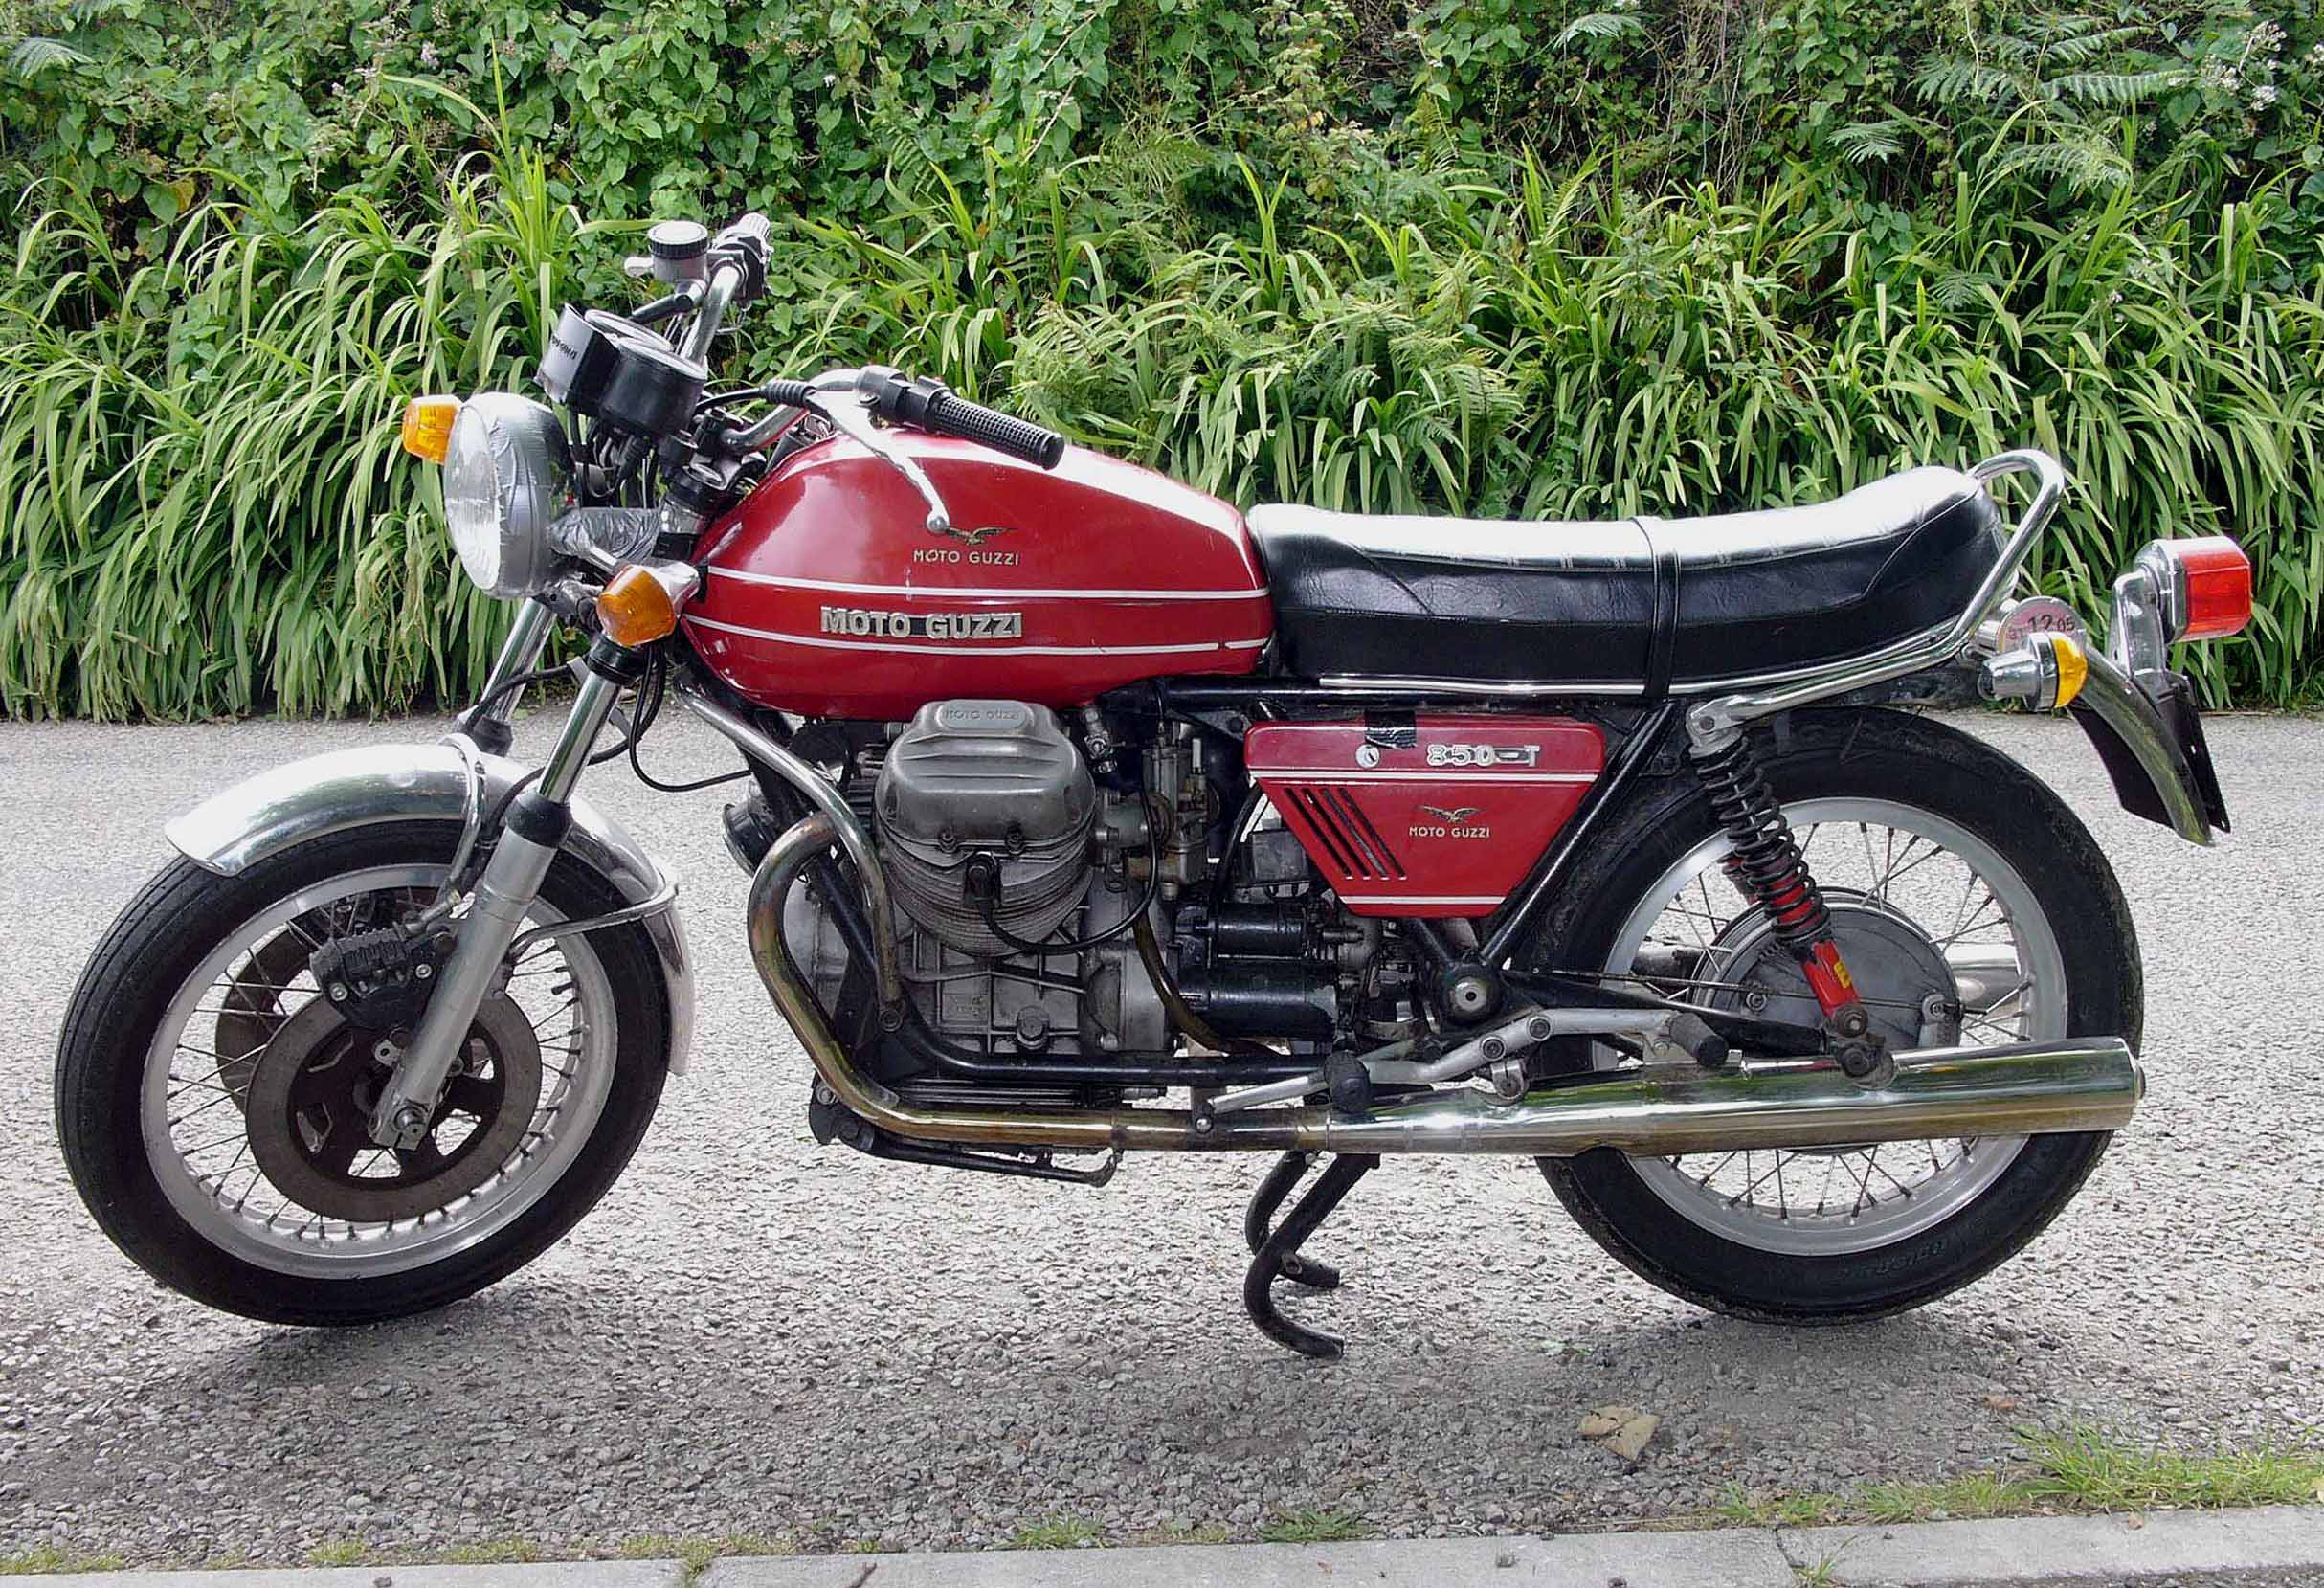 Moto Guzzi Quota 1000 images #109289